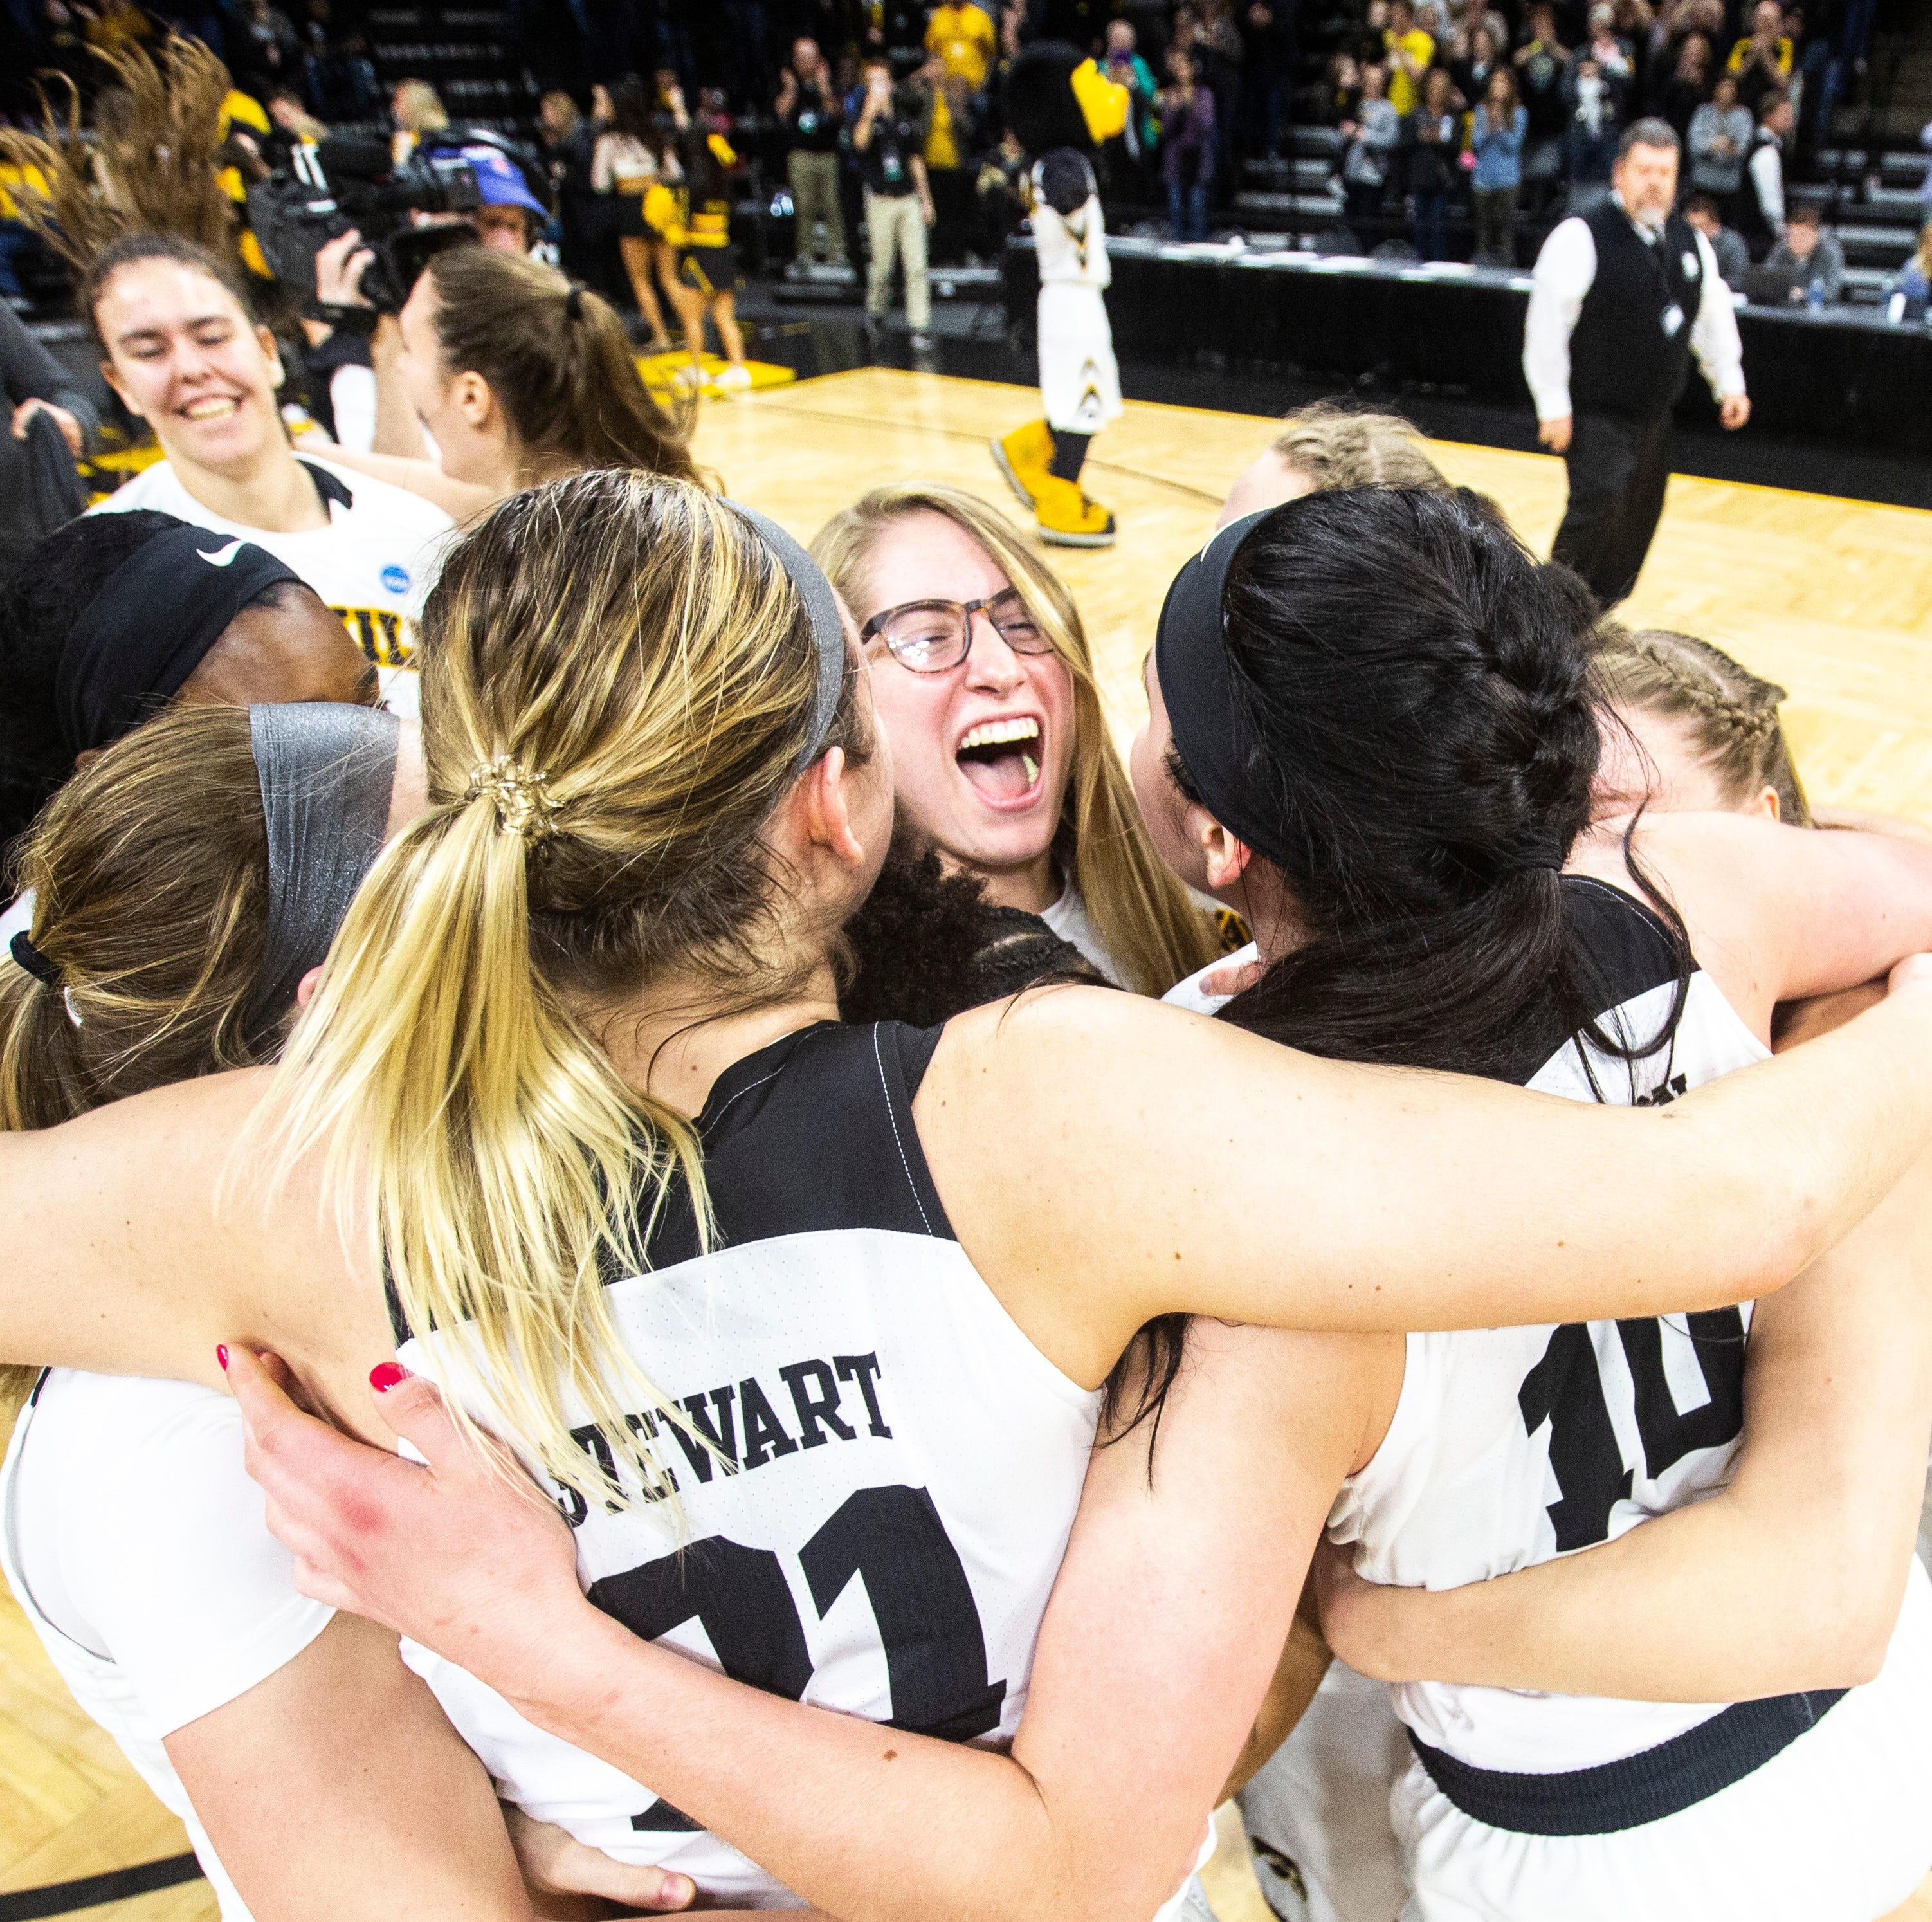 Mission focus: Emphatic finish propels Hawkeyes past Missouri, into Sweet Sixteen